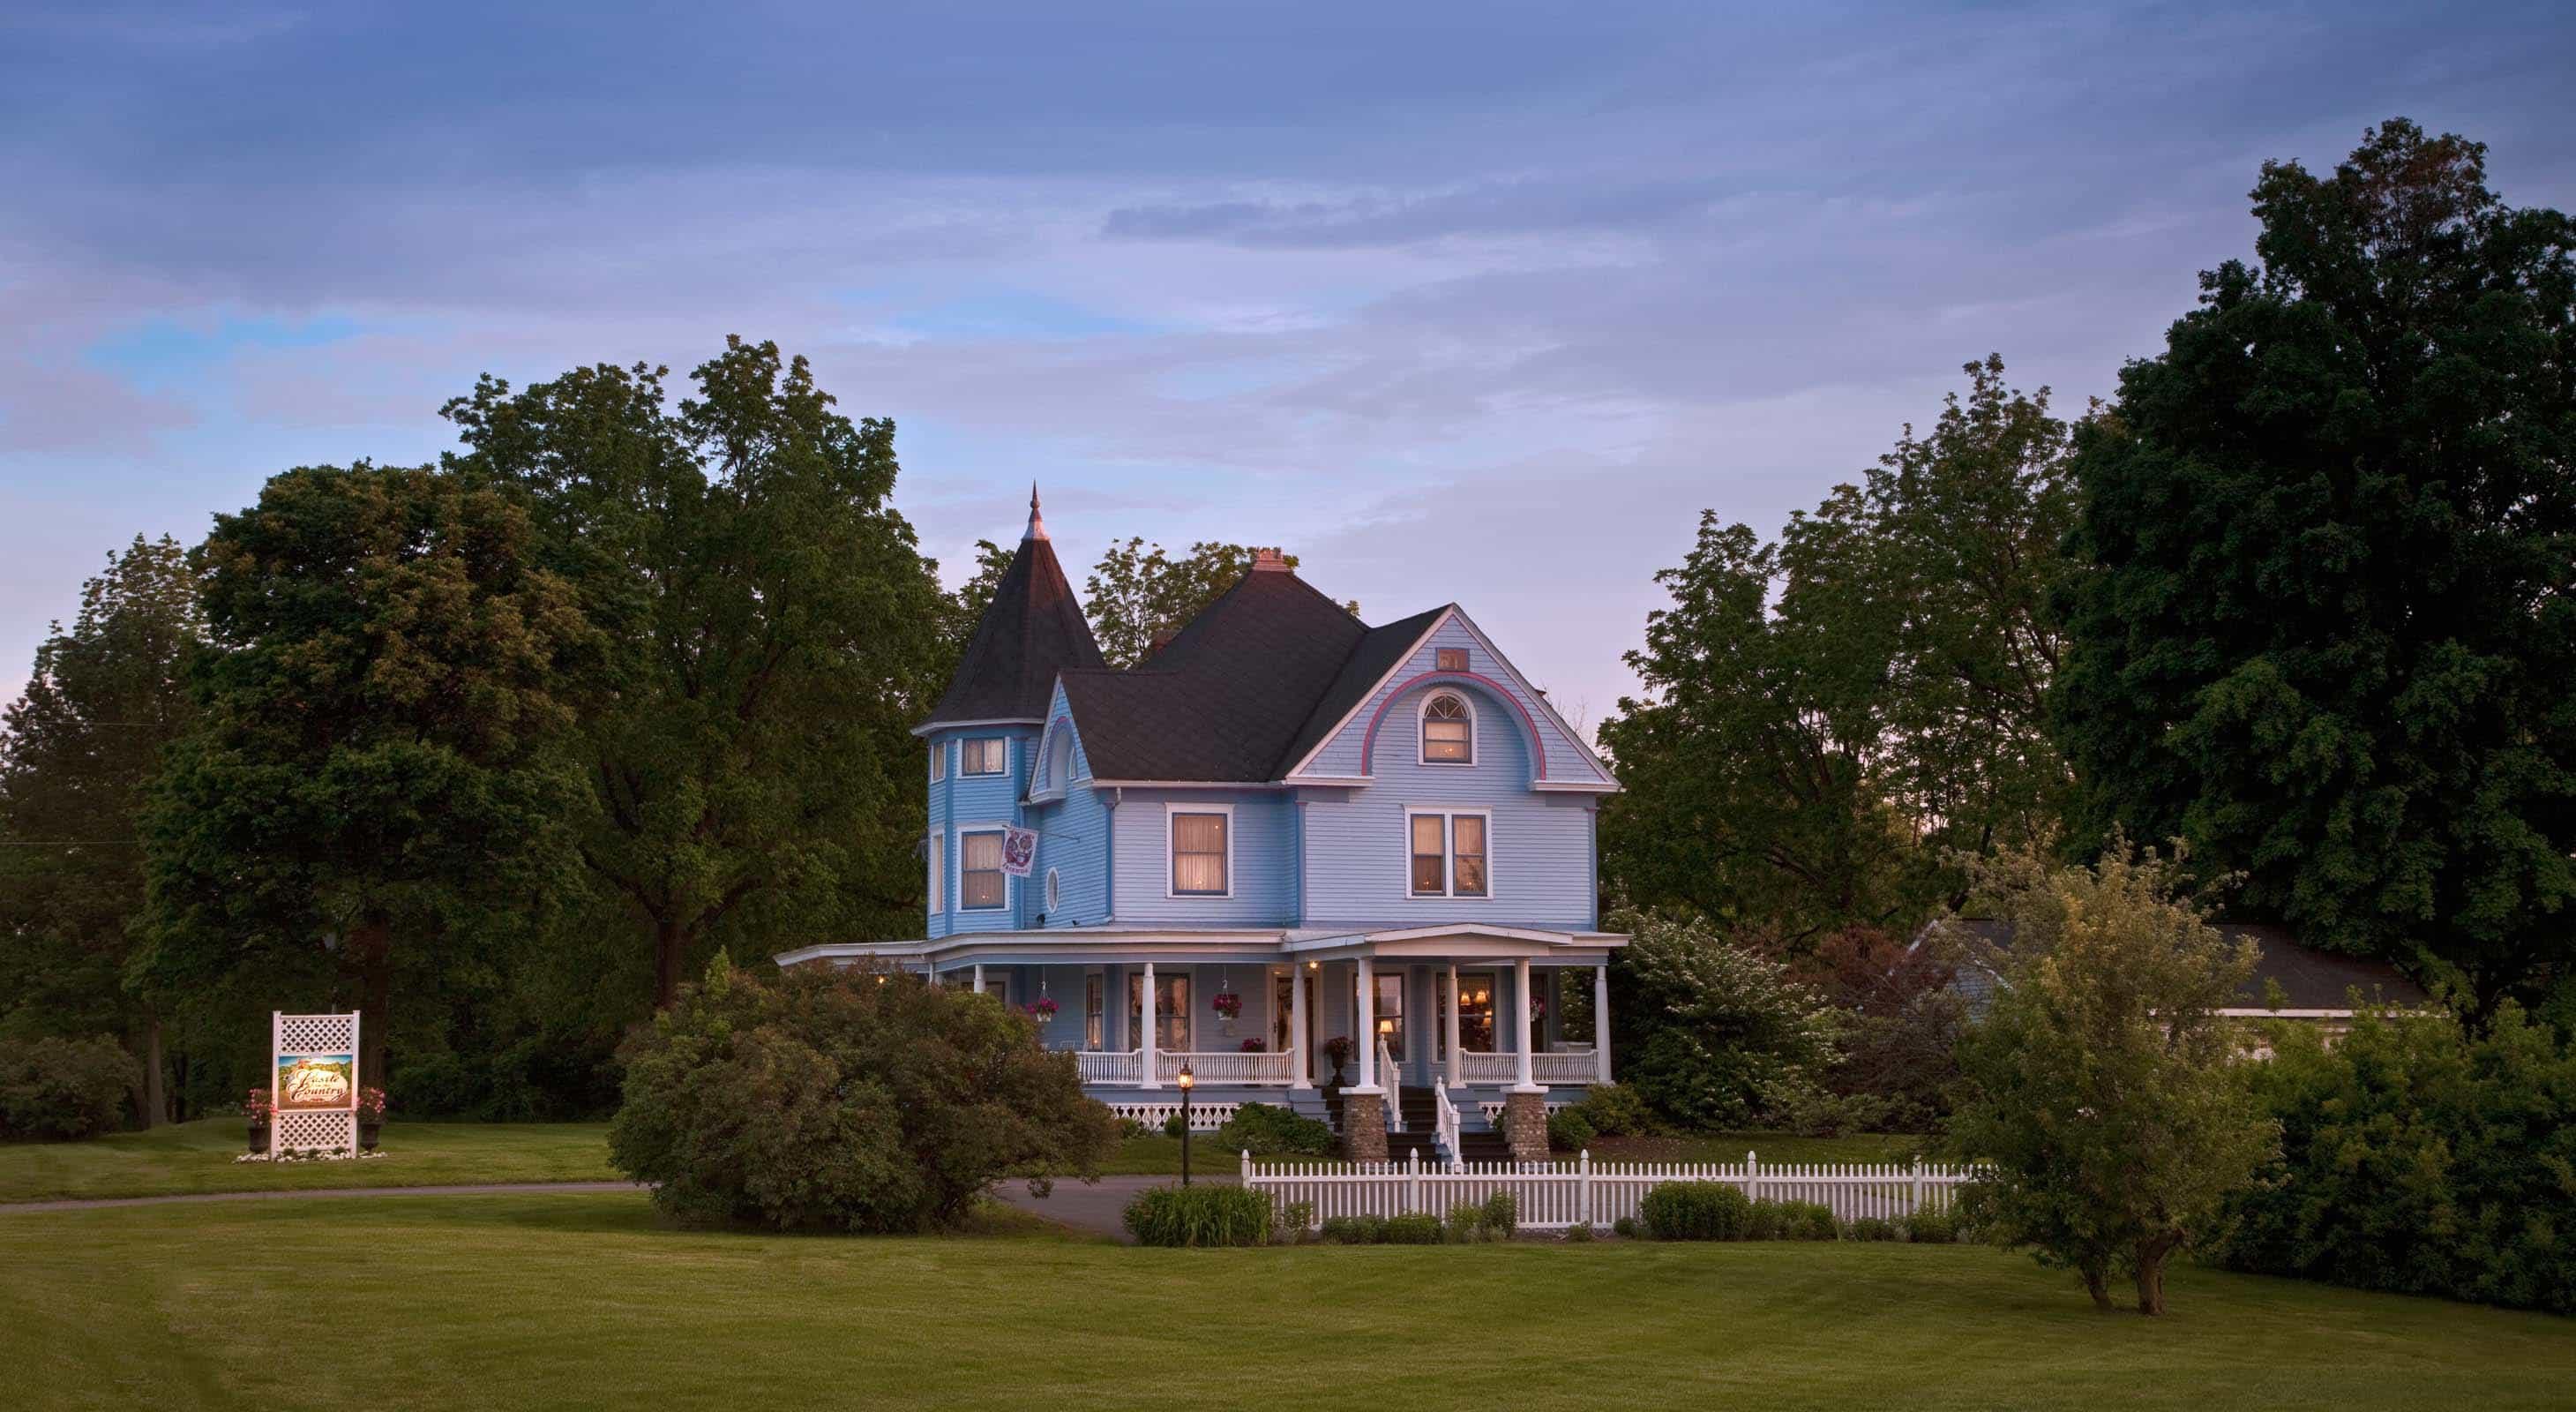 Michigan Winner – Castle in the Country